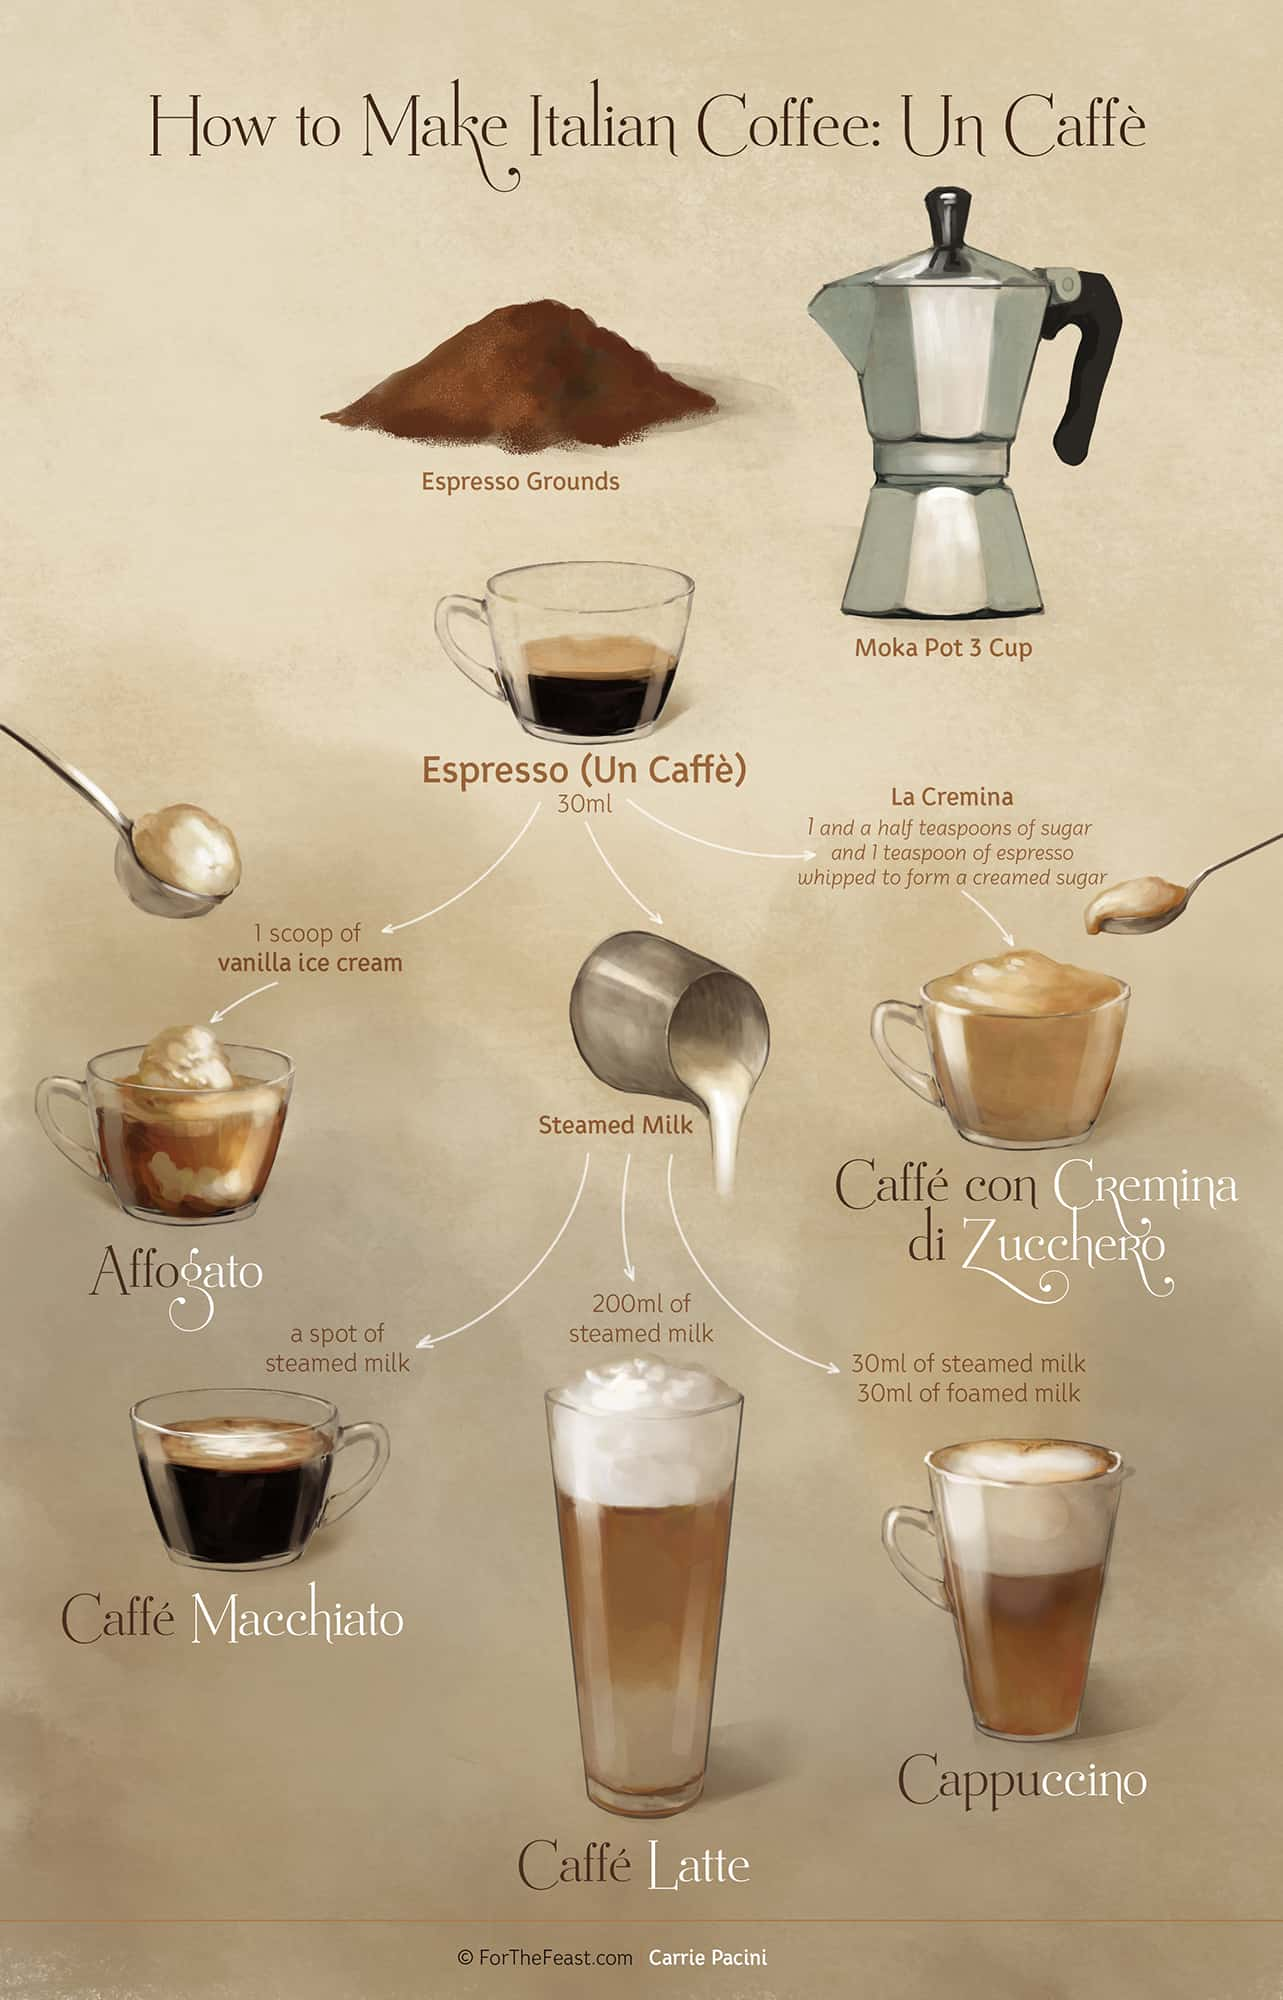 Learn How to Make Espresso #Italian #coffee #caffe #forthefeast